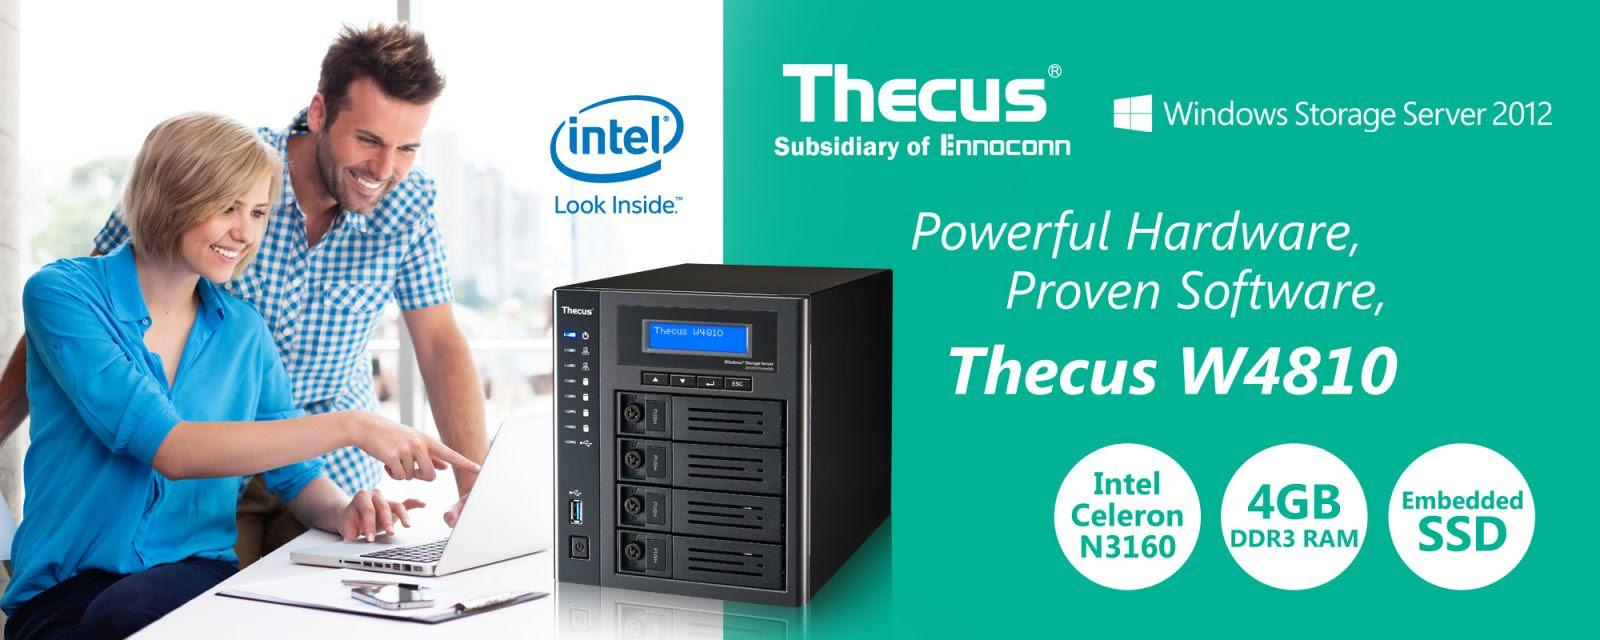 Thecus旗下微軟NAS家族系列推出全新4 Bays NAS W4810 - XFastest - unnamed.jpg